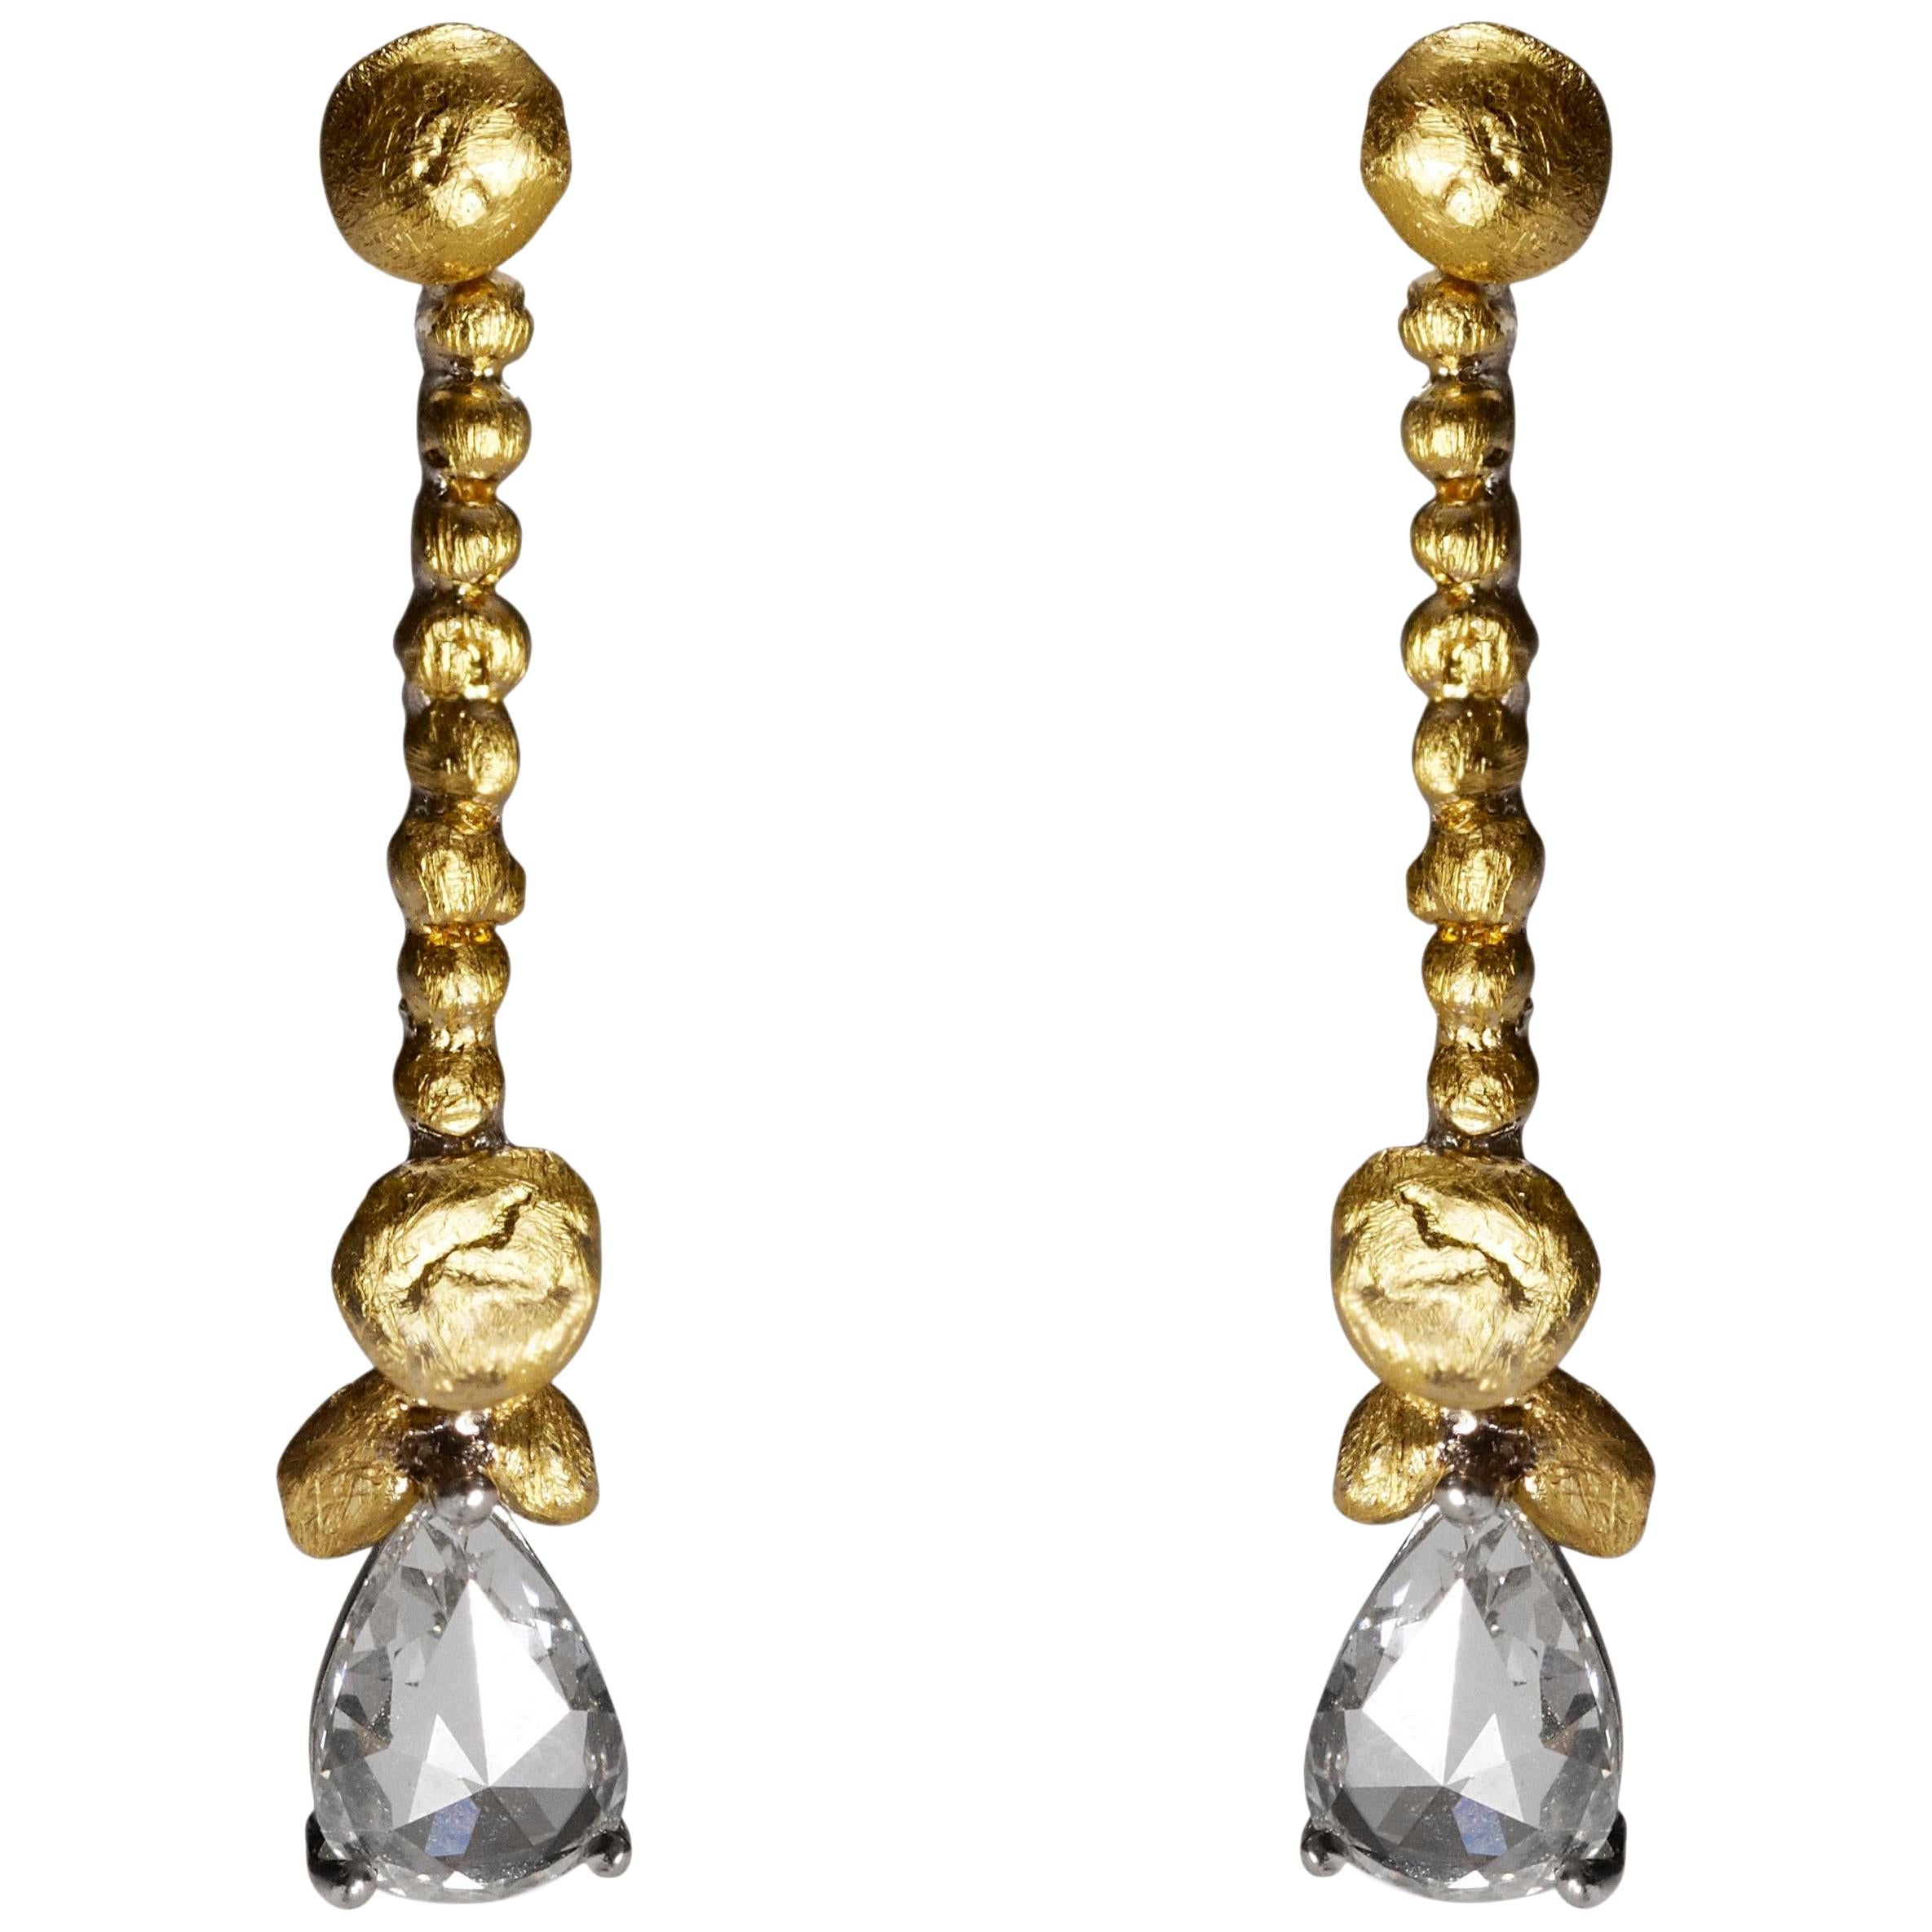 7a301b4254a62 L'or Pear Rose Cut Diamond Earrings in 24 Karat Gold and Platinum